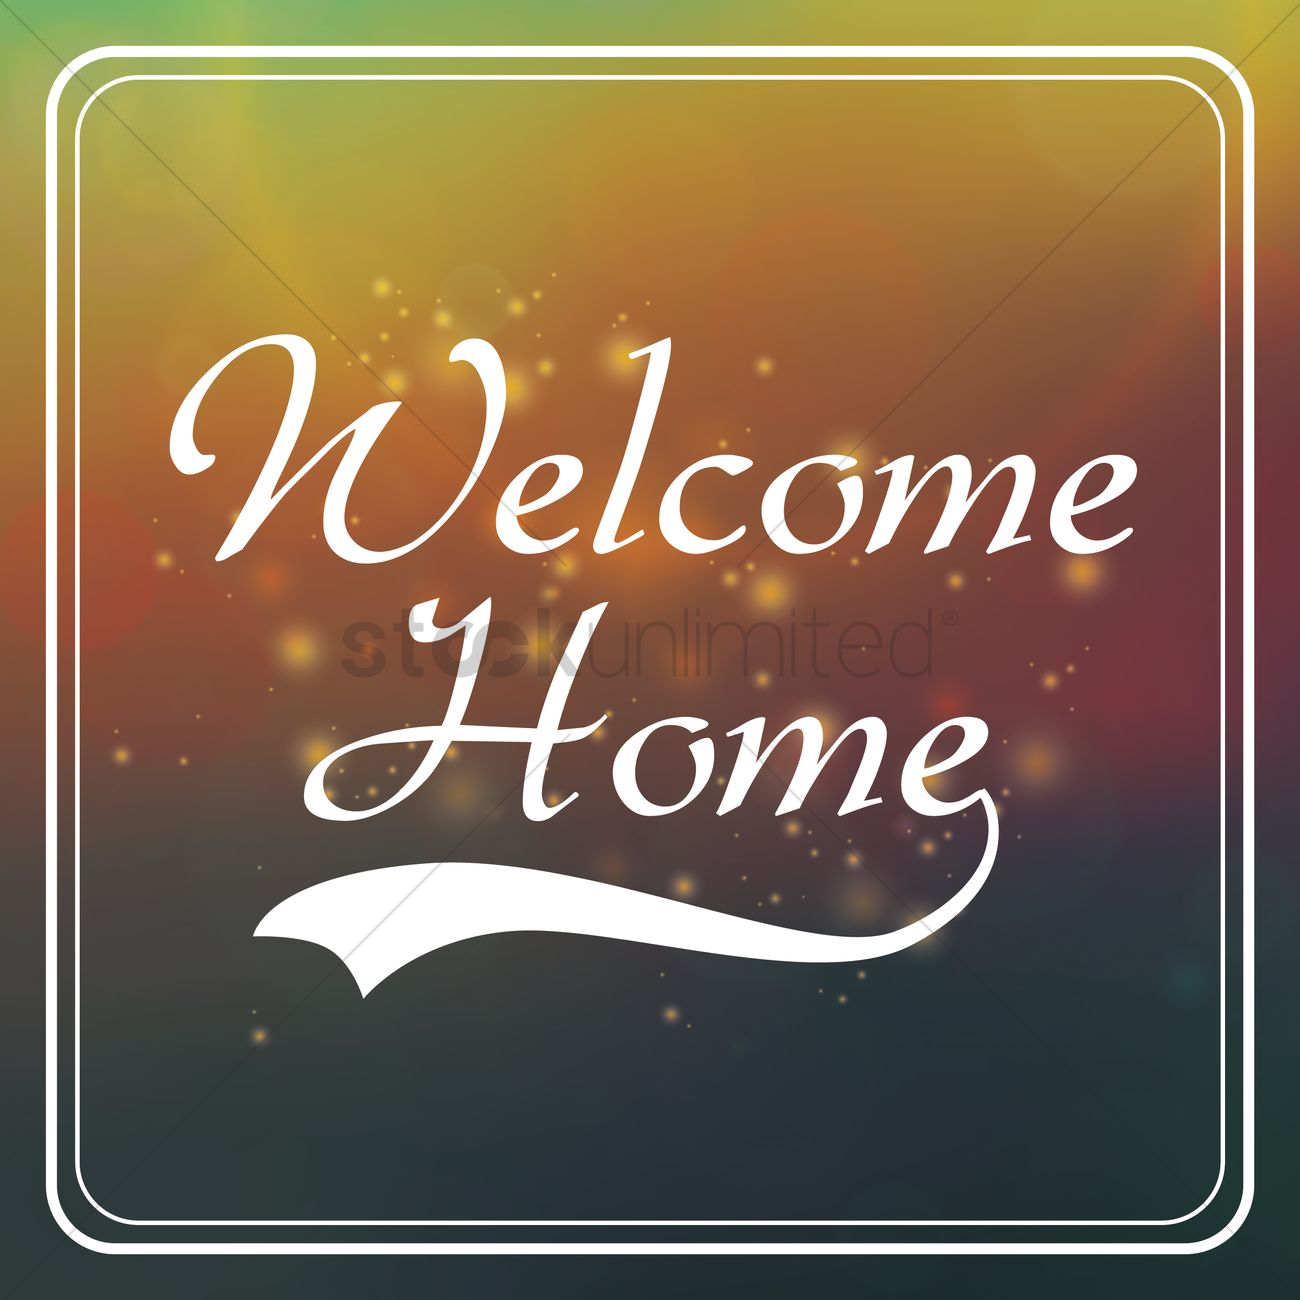 welcome-home-greeting_1610036.jpg